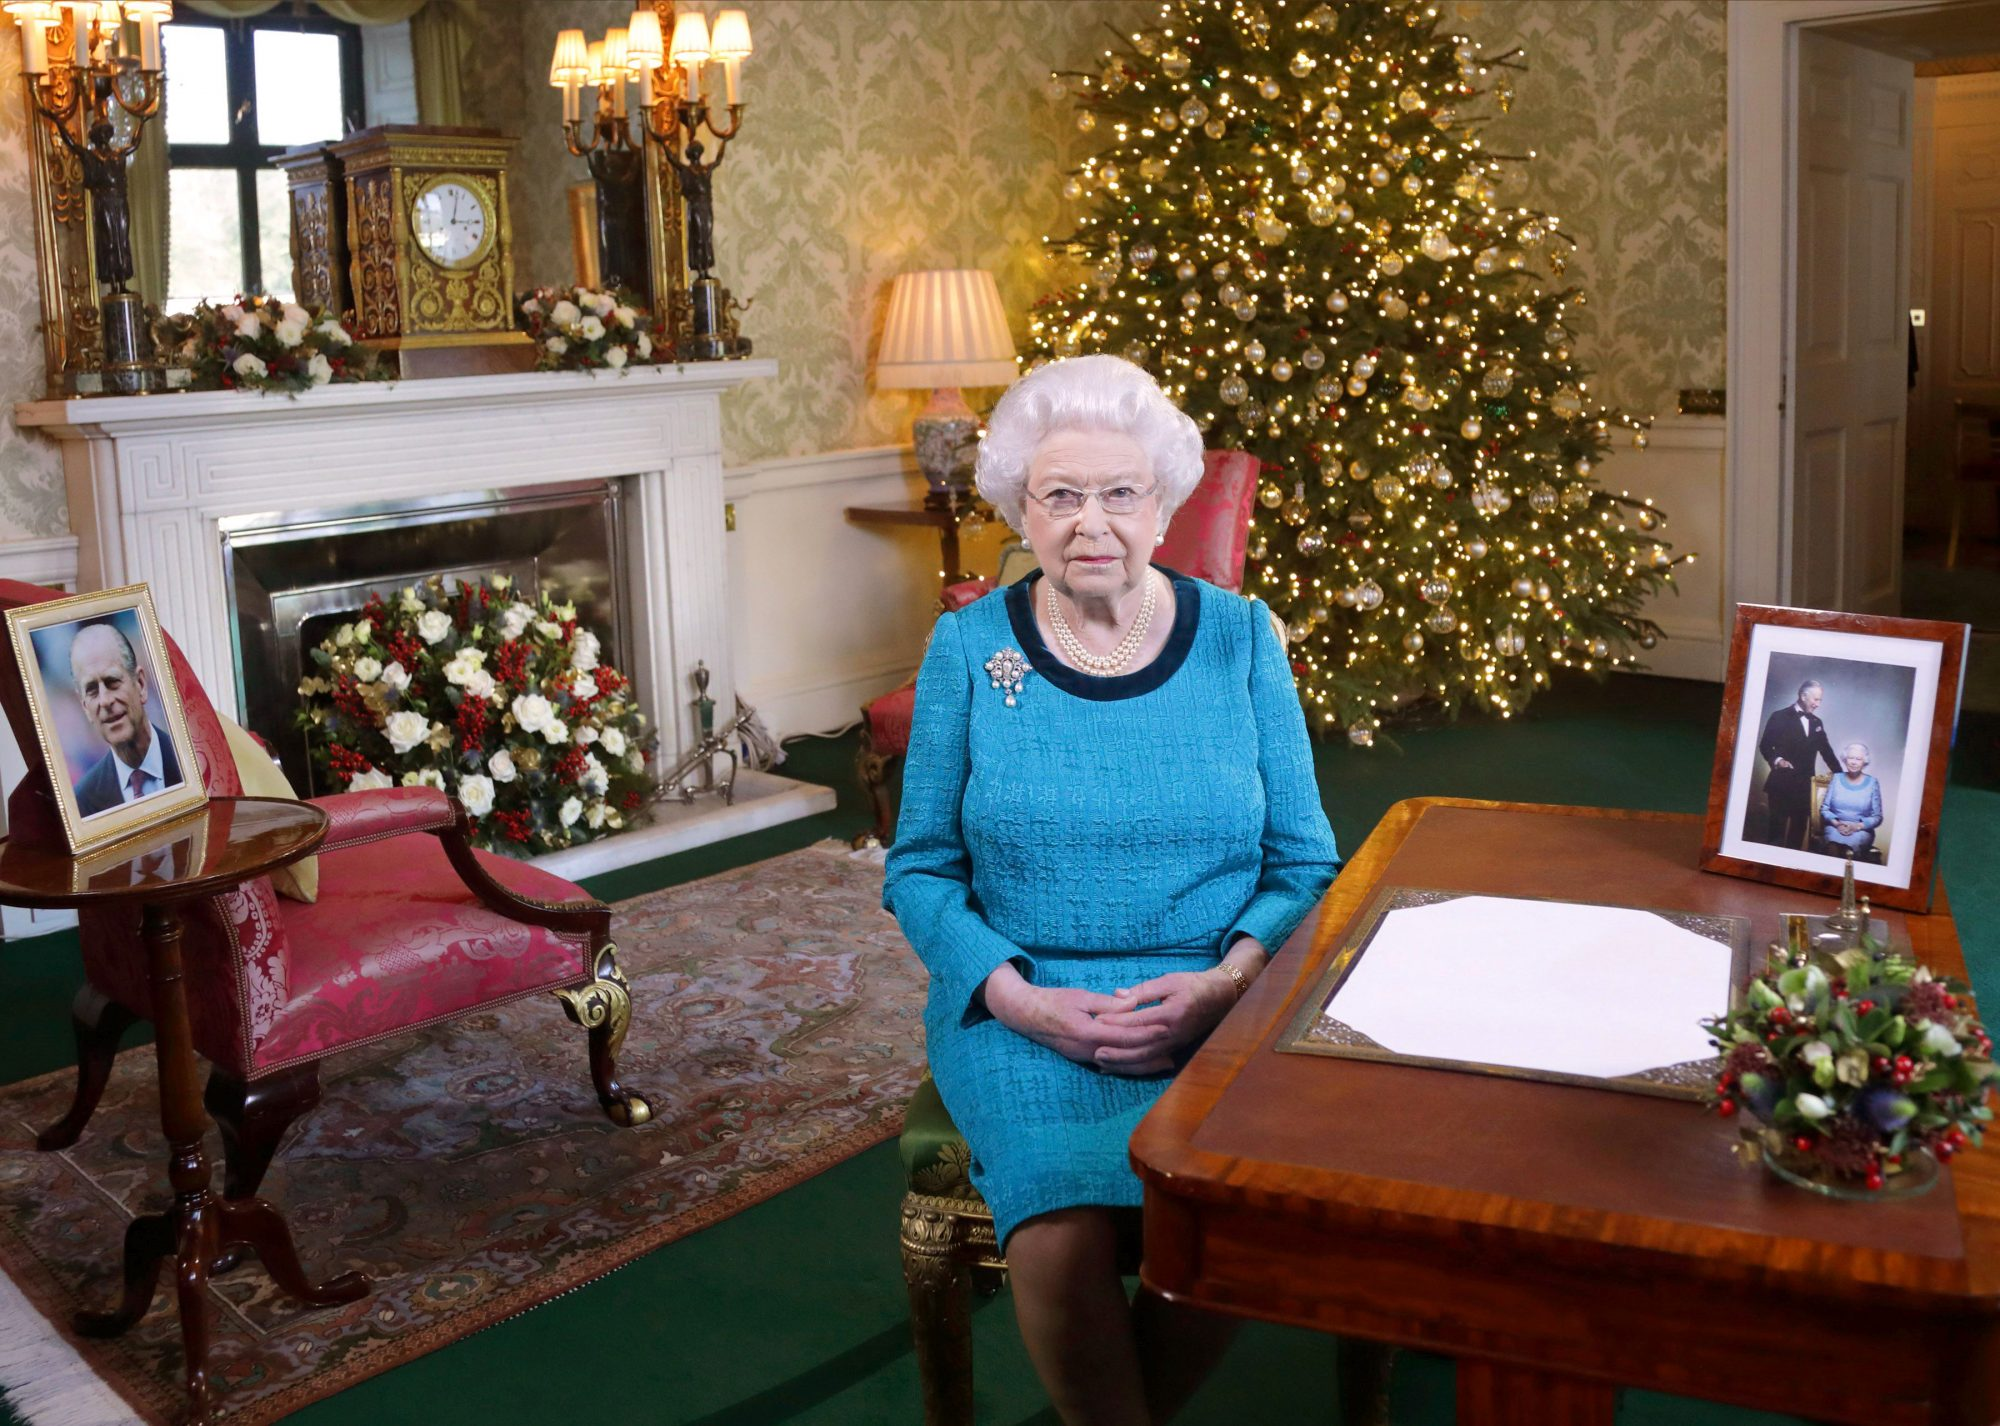 Queen Elizabeth II Enjoys Christmas 2016